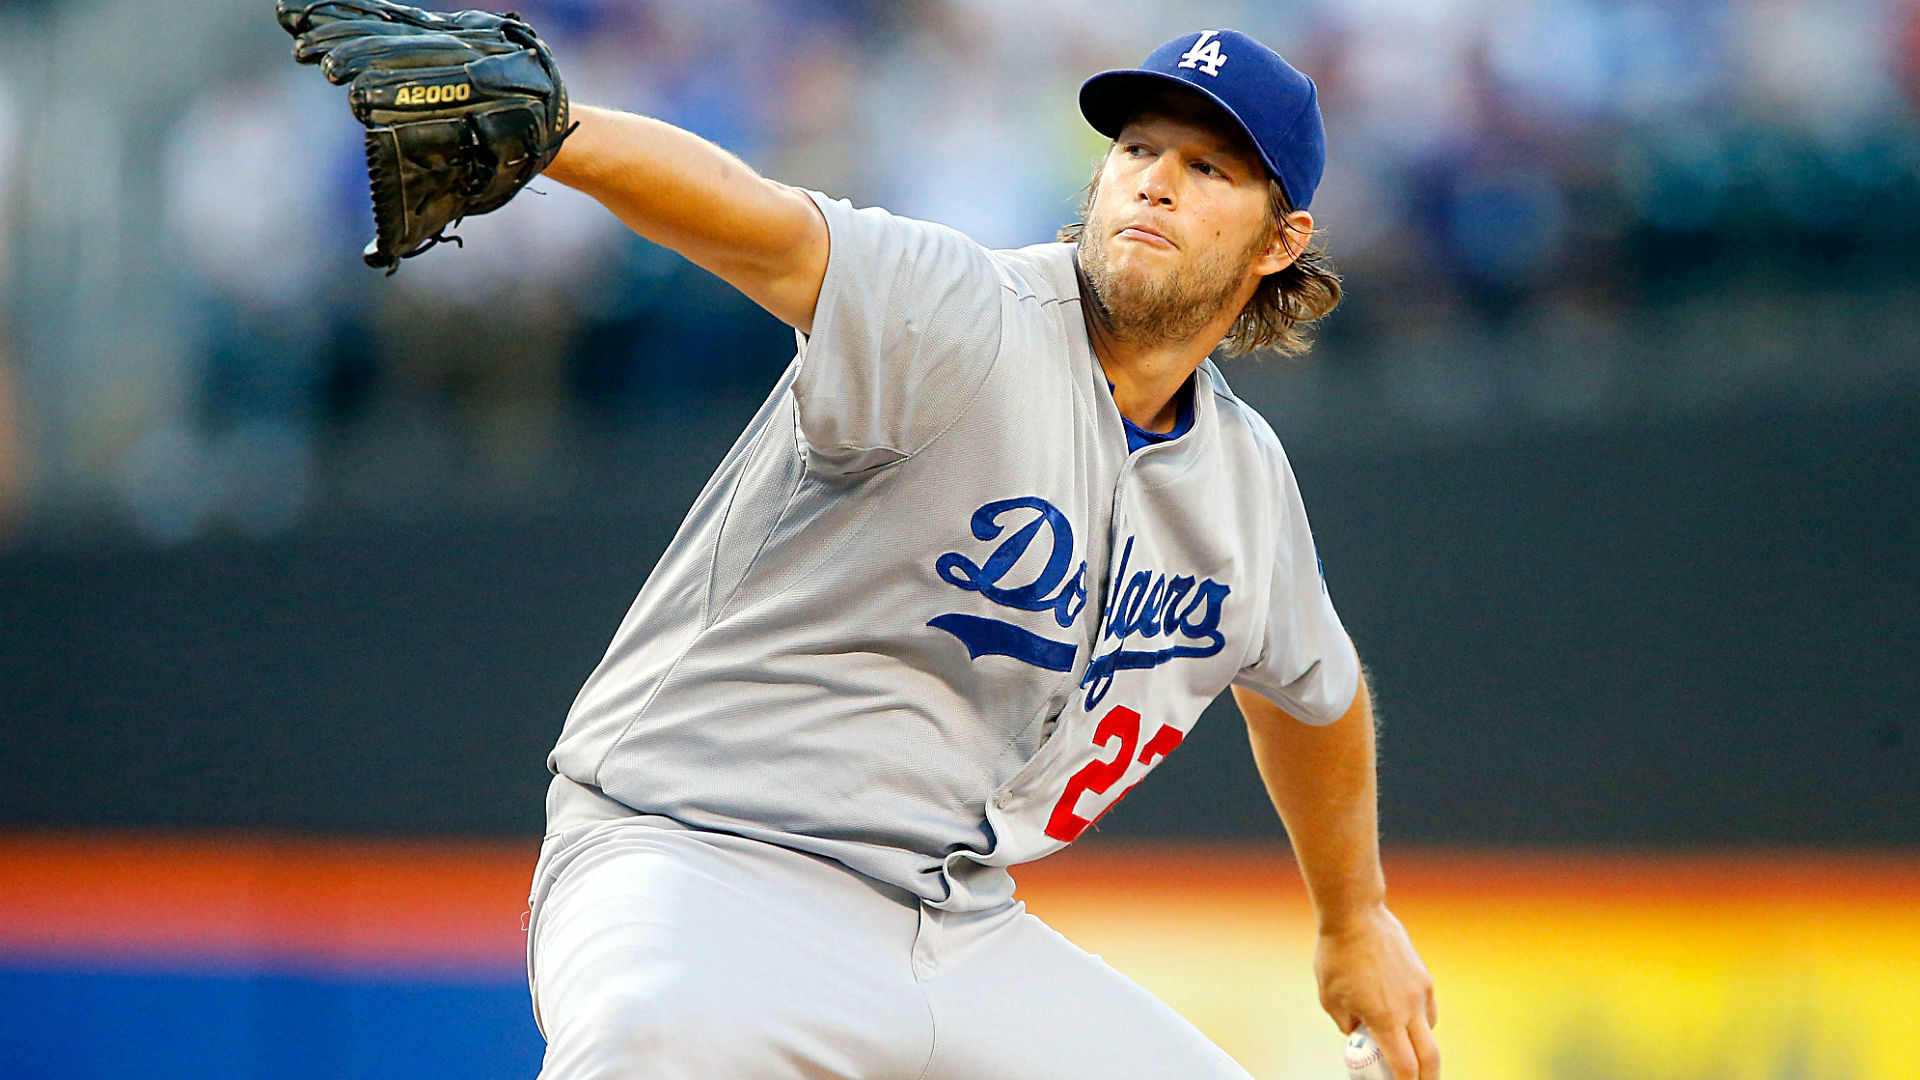 Dodgers ace Clayton Kershaw